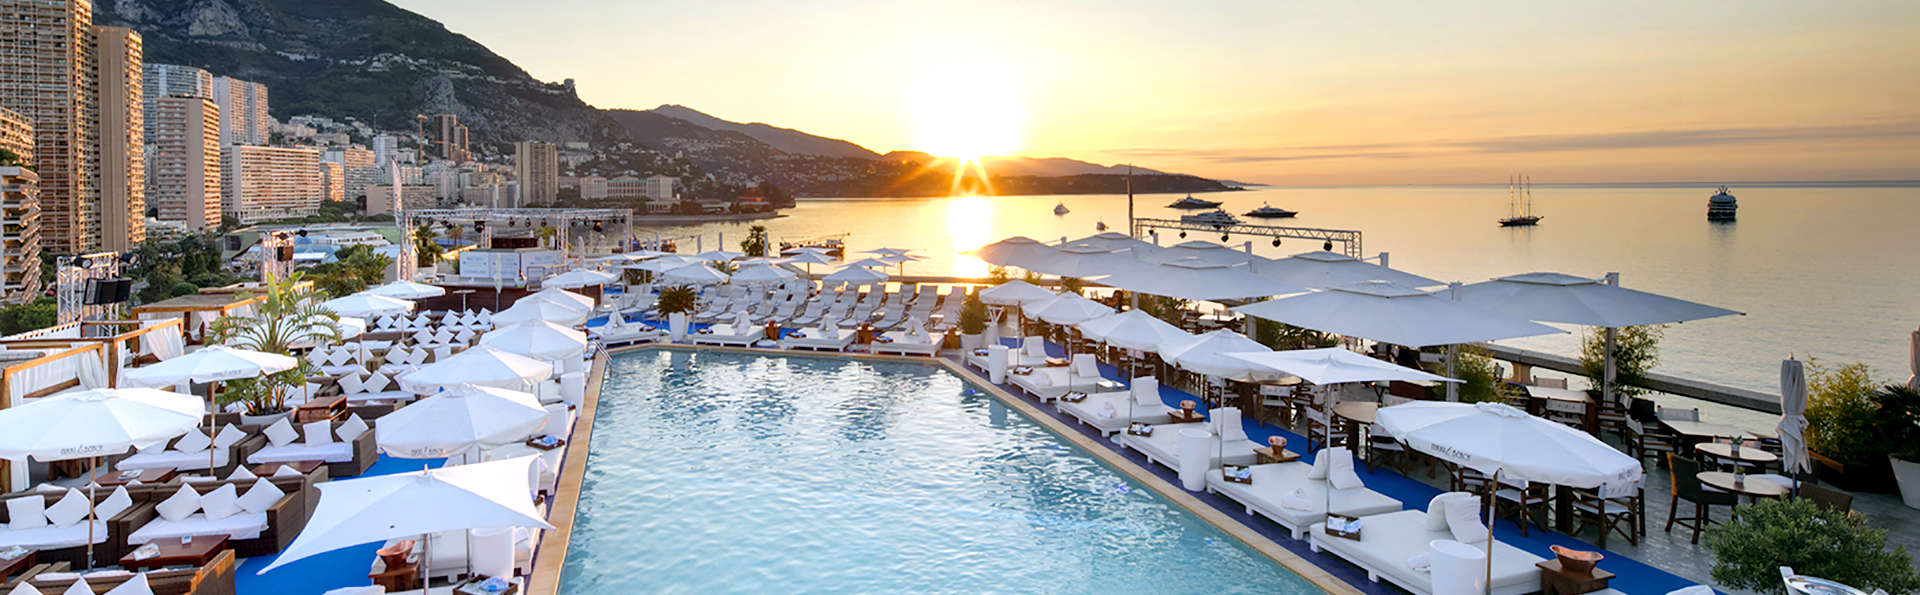 Fairmont Monte Carlo - EDIT_NEW_POOL.jpg